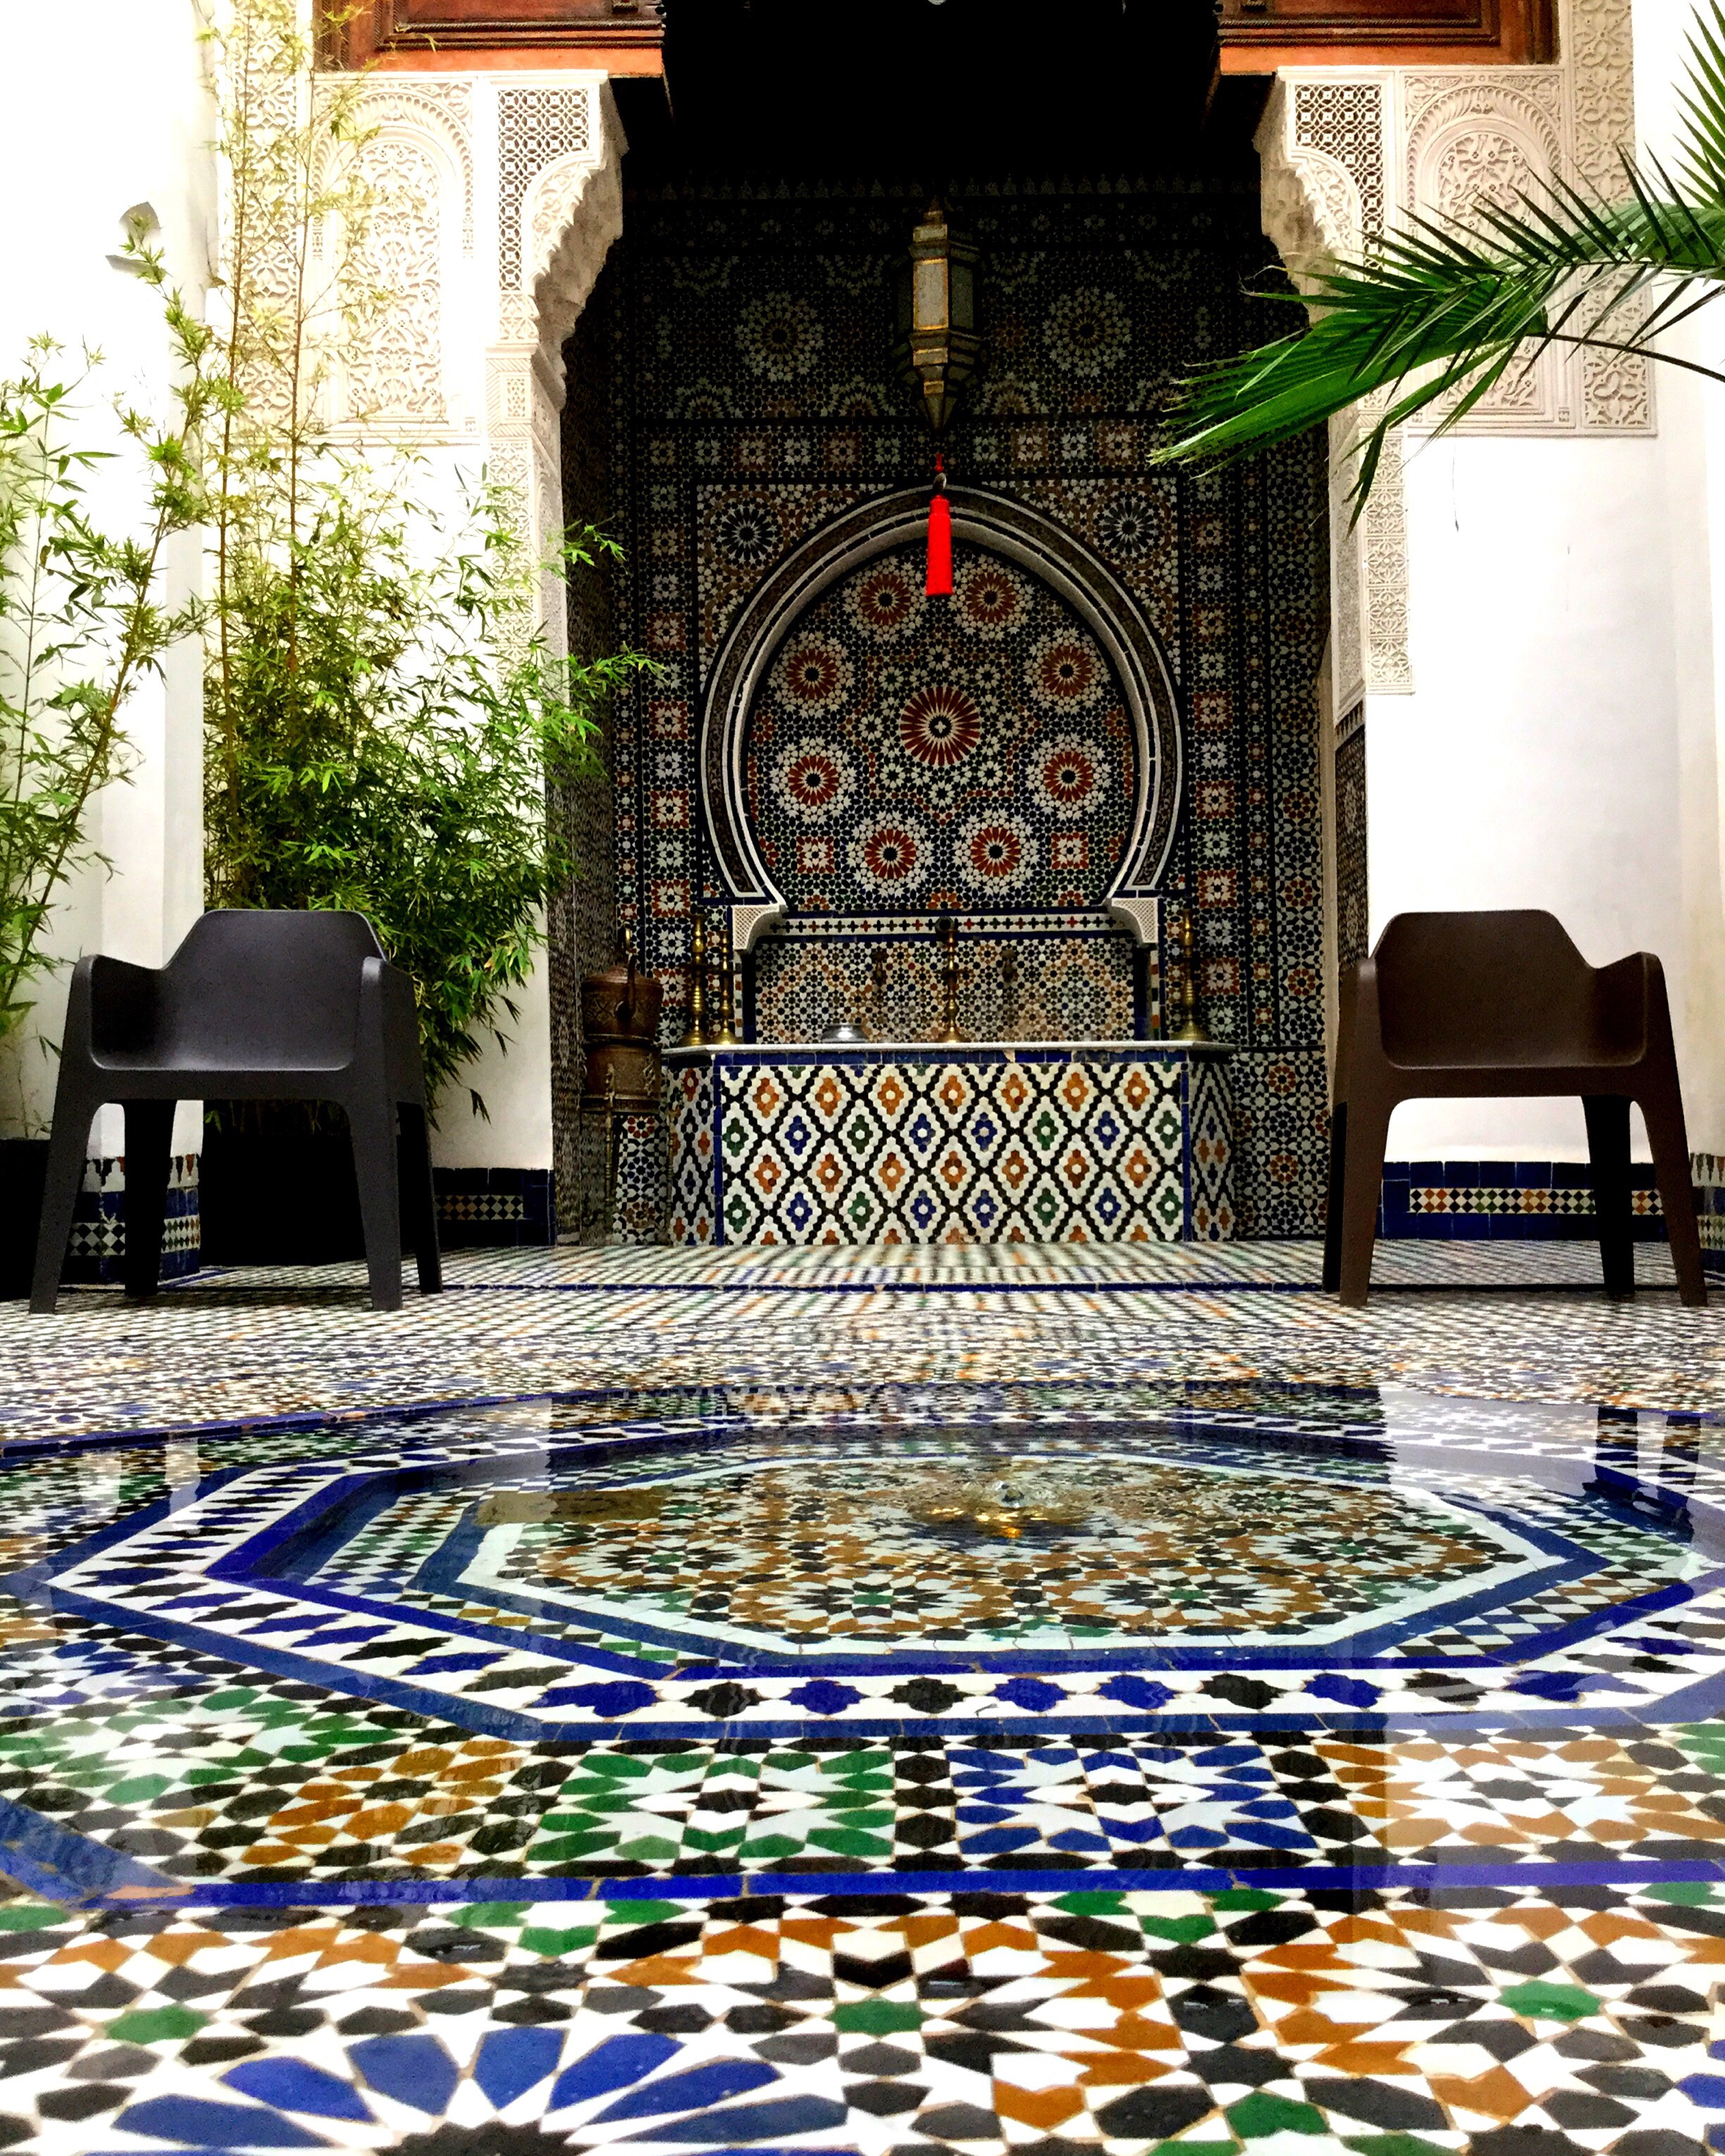 About Dar7louyat - Dar 7 Louyat is a splendid mansion of the fifteenth century, a haven of peace in the heart of the Medina of Fez, close to the oldest university in the world, the Great Mosque Qaraouyine.